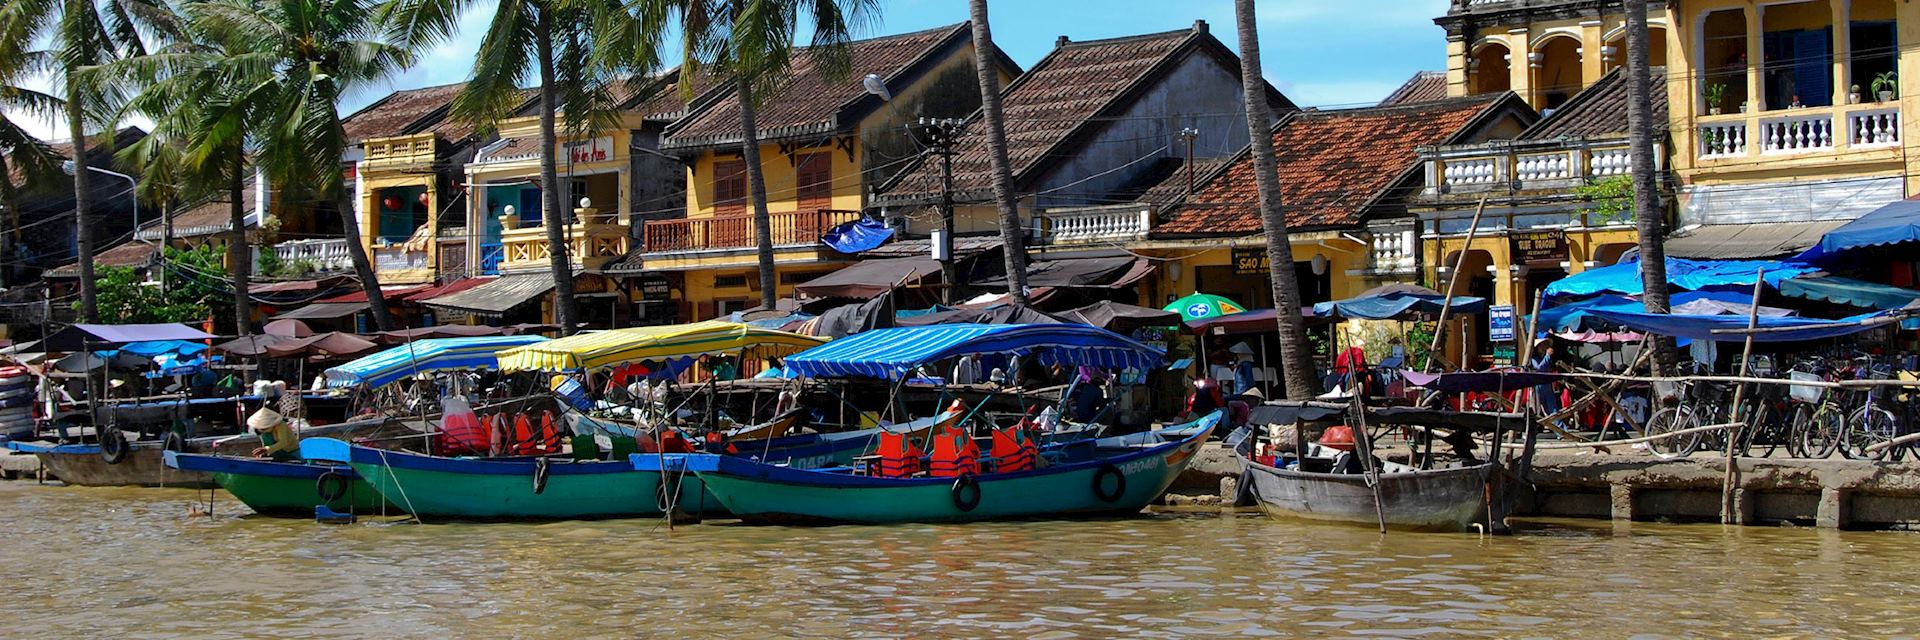 Hoi An's waterfront, Vietnam